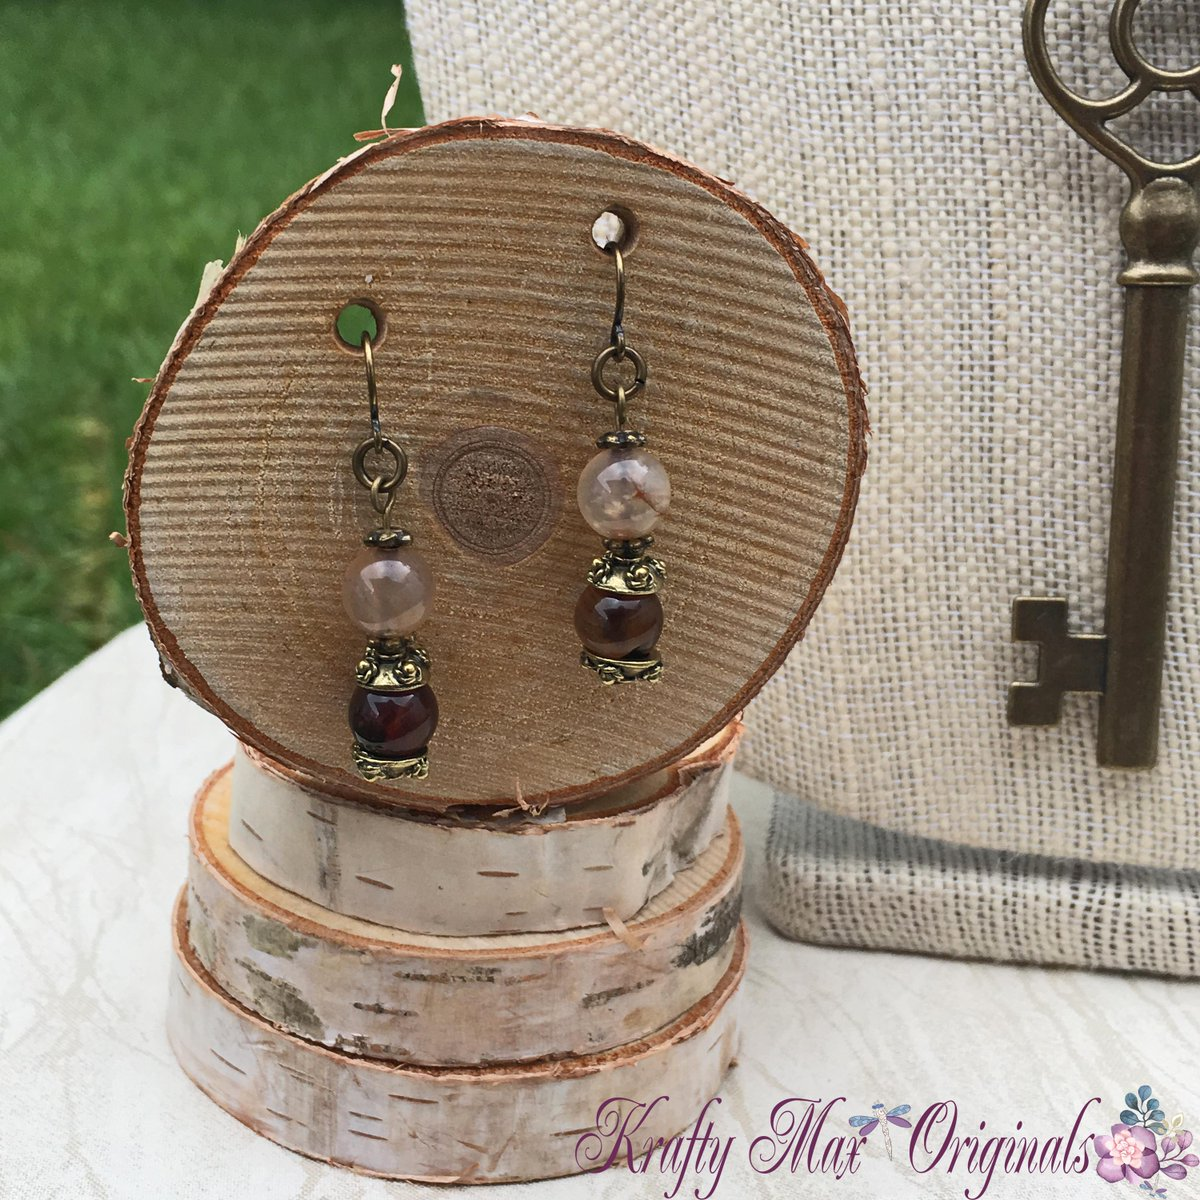 Fall Agate with Gold Key Necklace Set (discounted from $43 down to $20)  #handmade #jewelry #buyhandmade #handmadelove #handcrafted #kraftymax #kmax #discount #sale #bargain #save #clearance